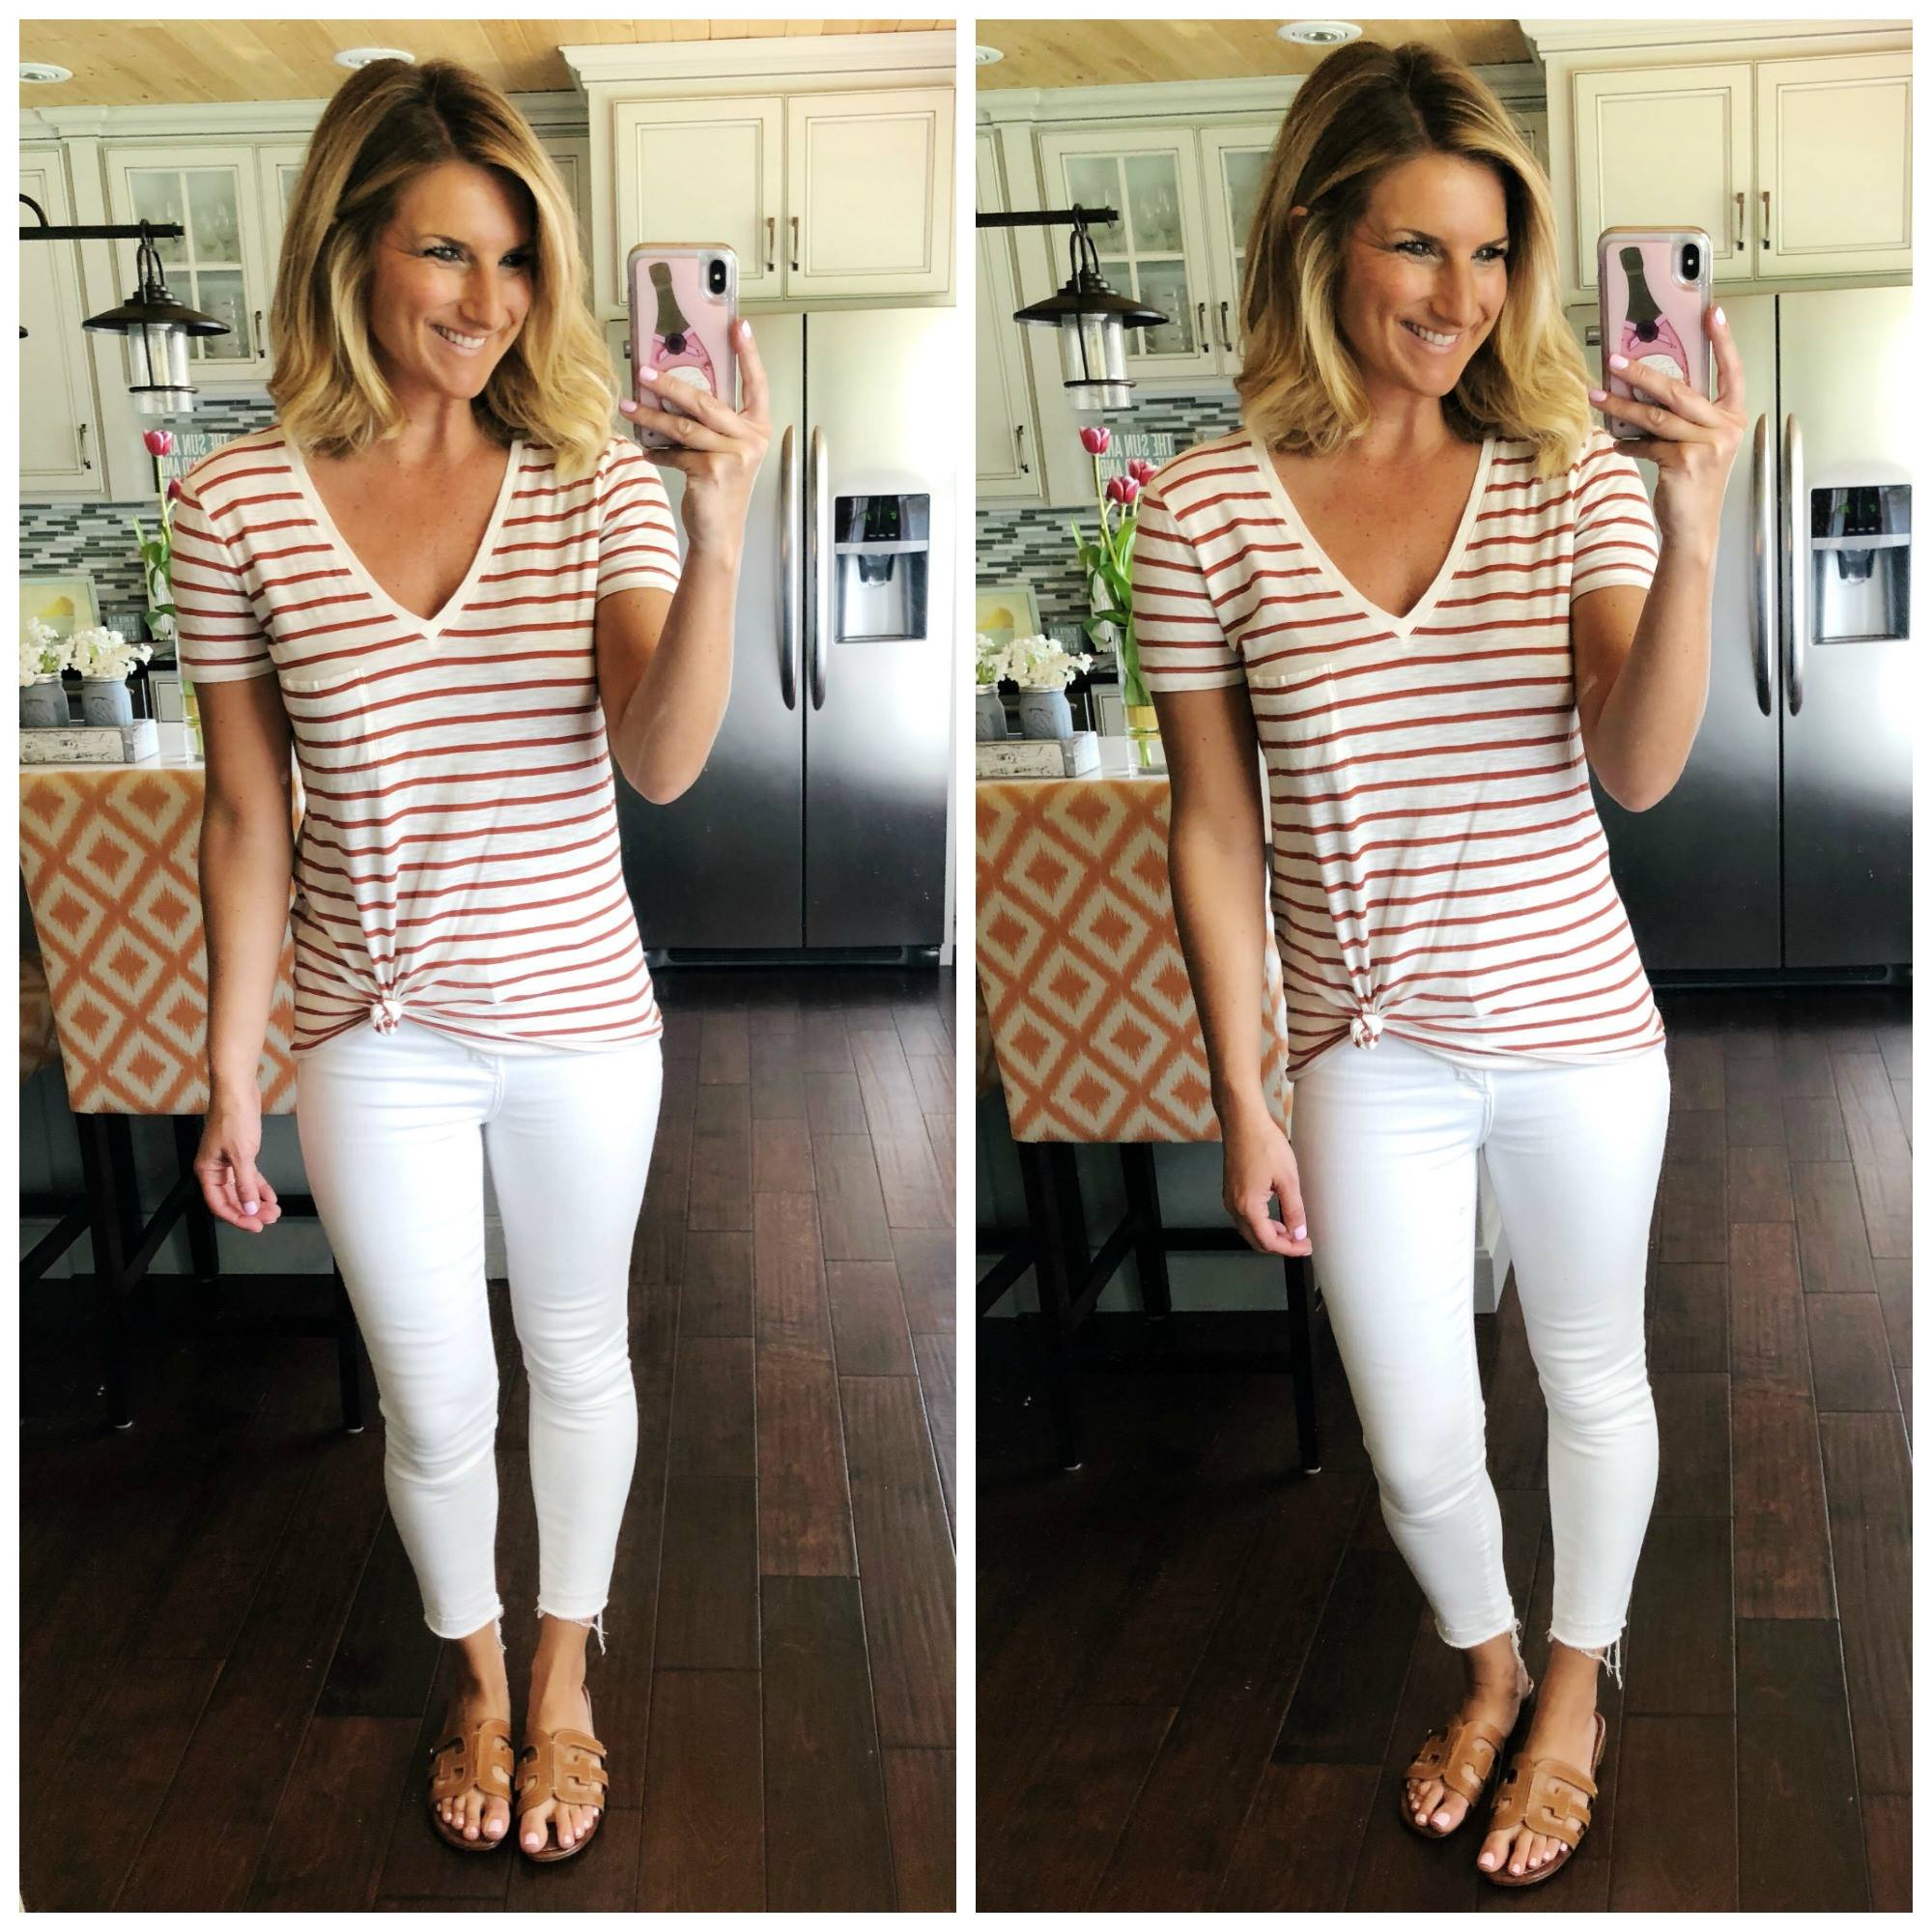 How to tie a tee // what to wear with white jeans // v neck top with white jeans and slide sandals